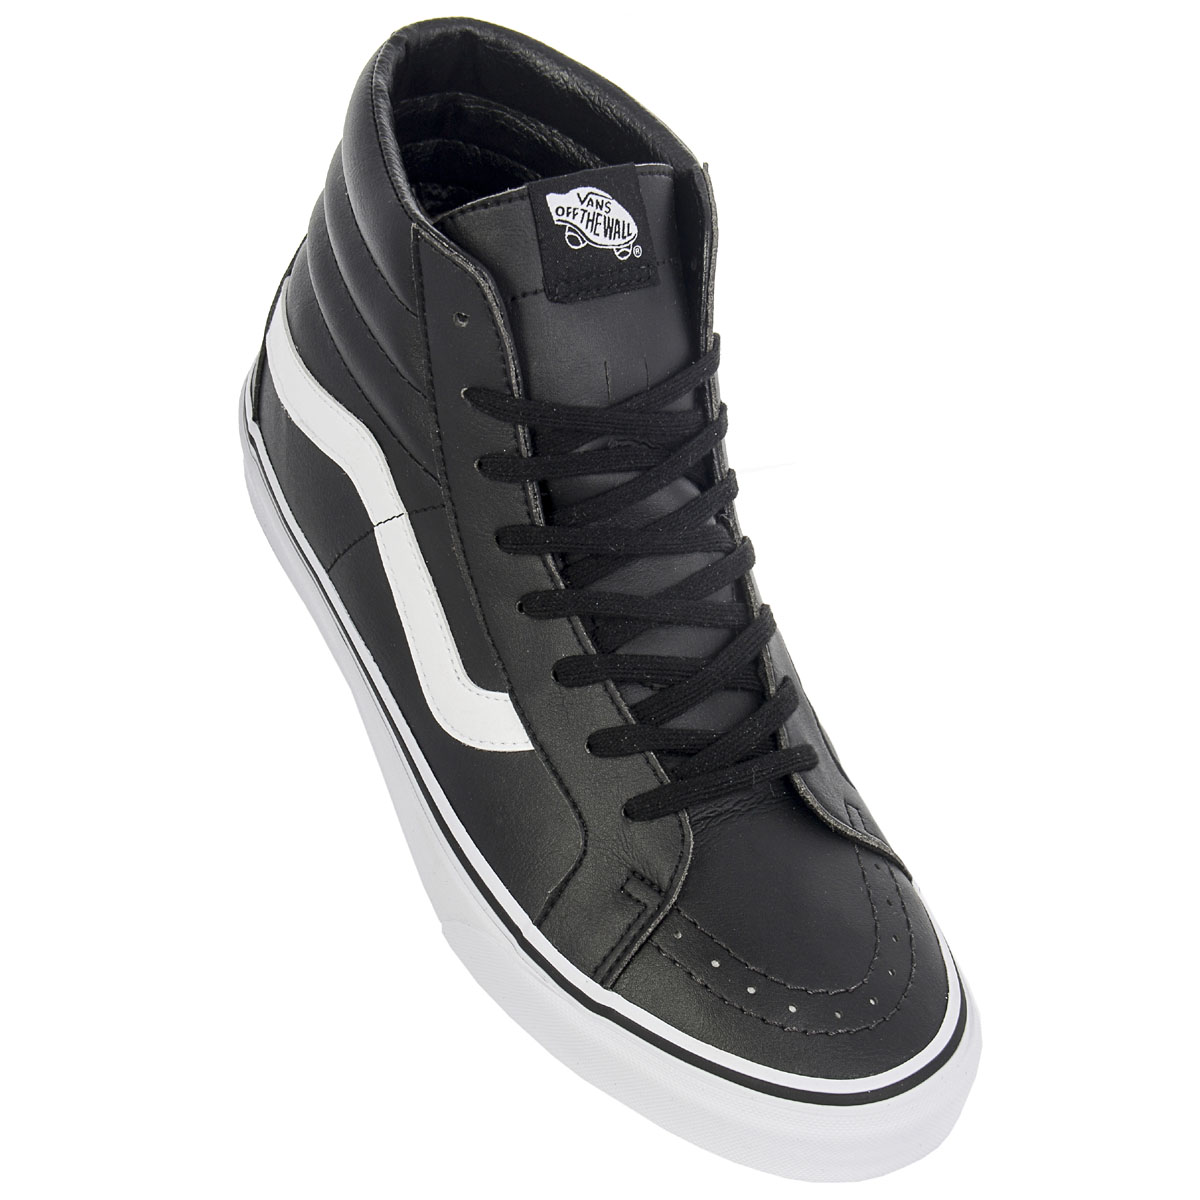 bae73567f2 NEW Vans SK8-HI Reissue VN0AZXSBNQR Men  s Shoes Trainers Sneakers SALE